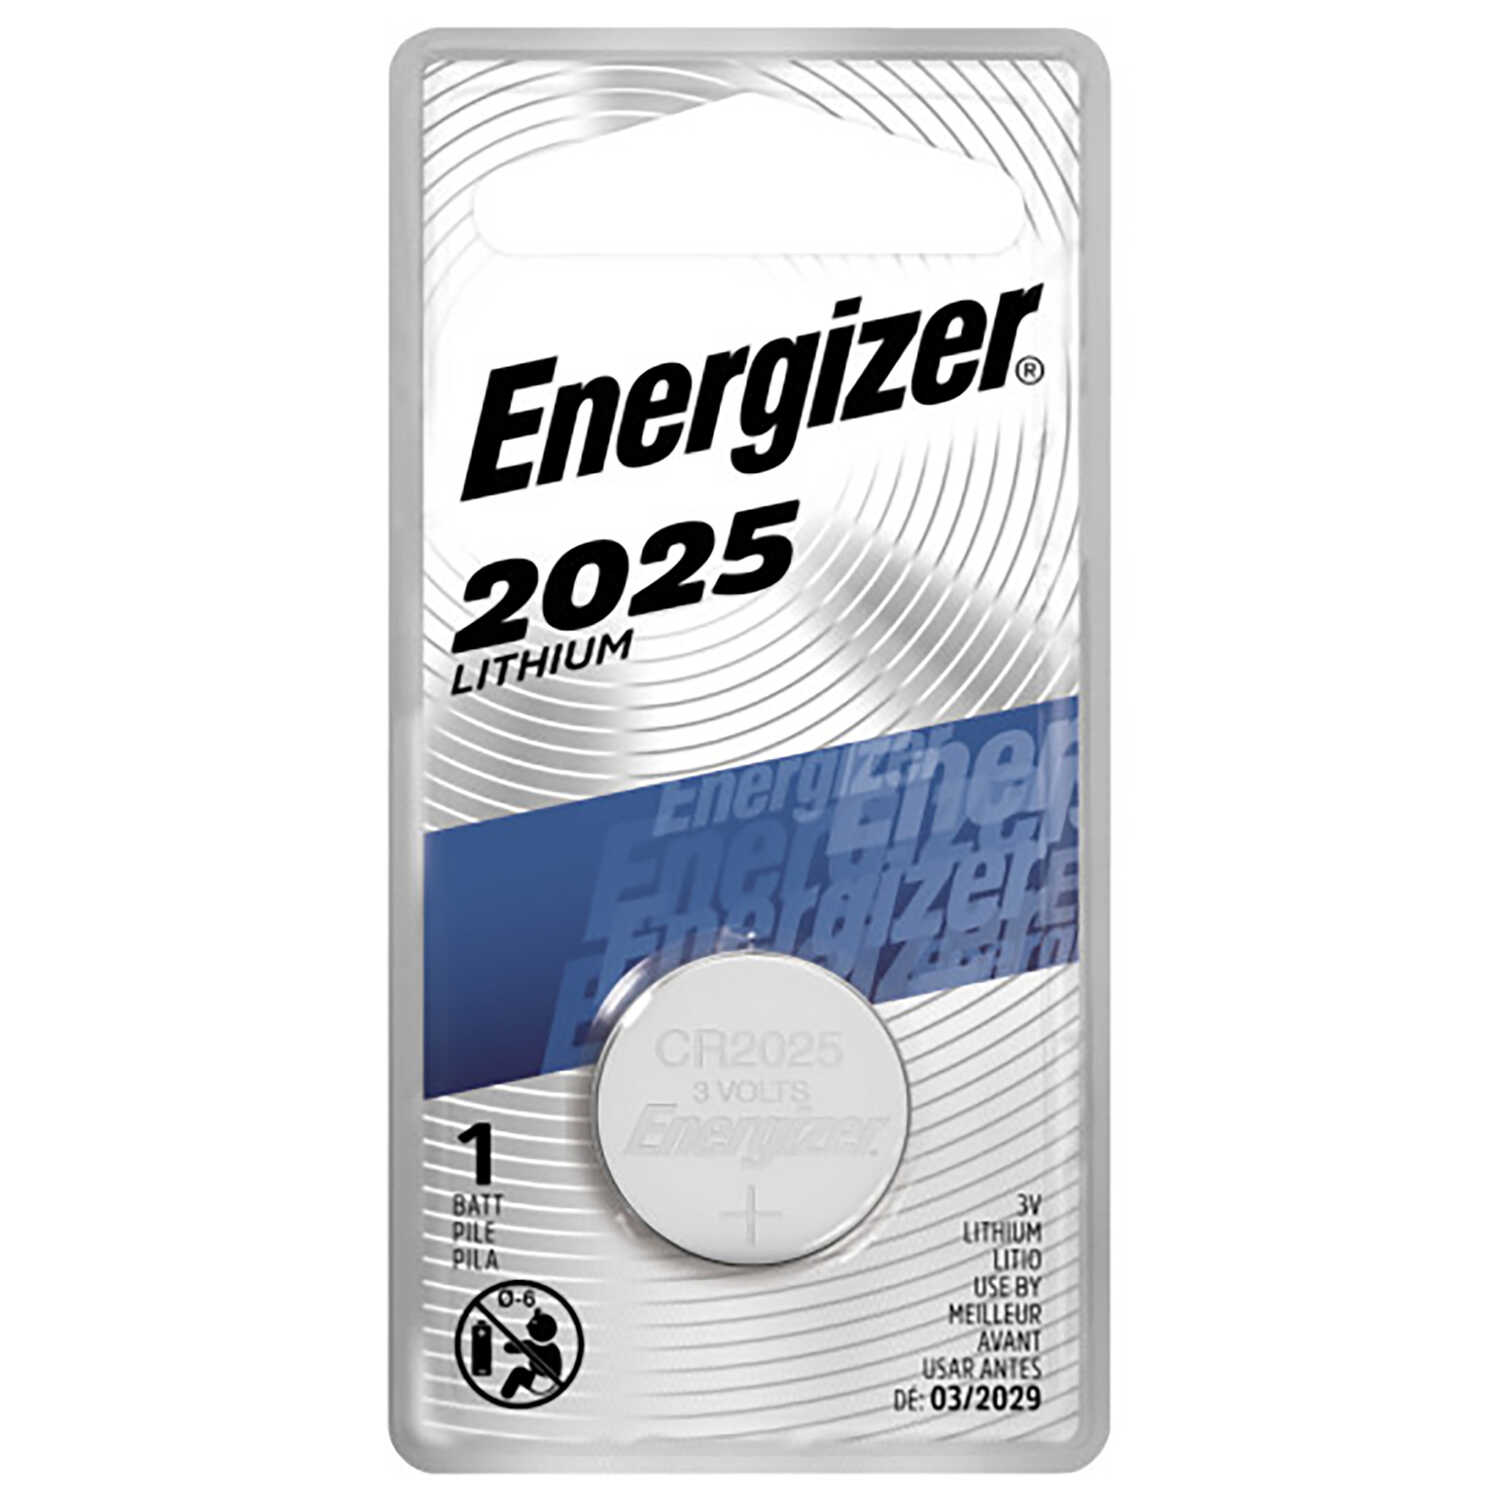 Energizer  Lithium  2025  3 volt Keyless Entry Battery  1 pk